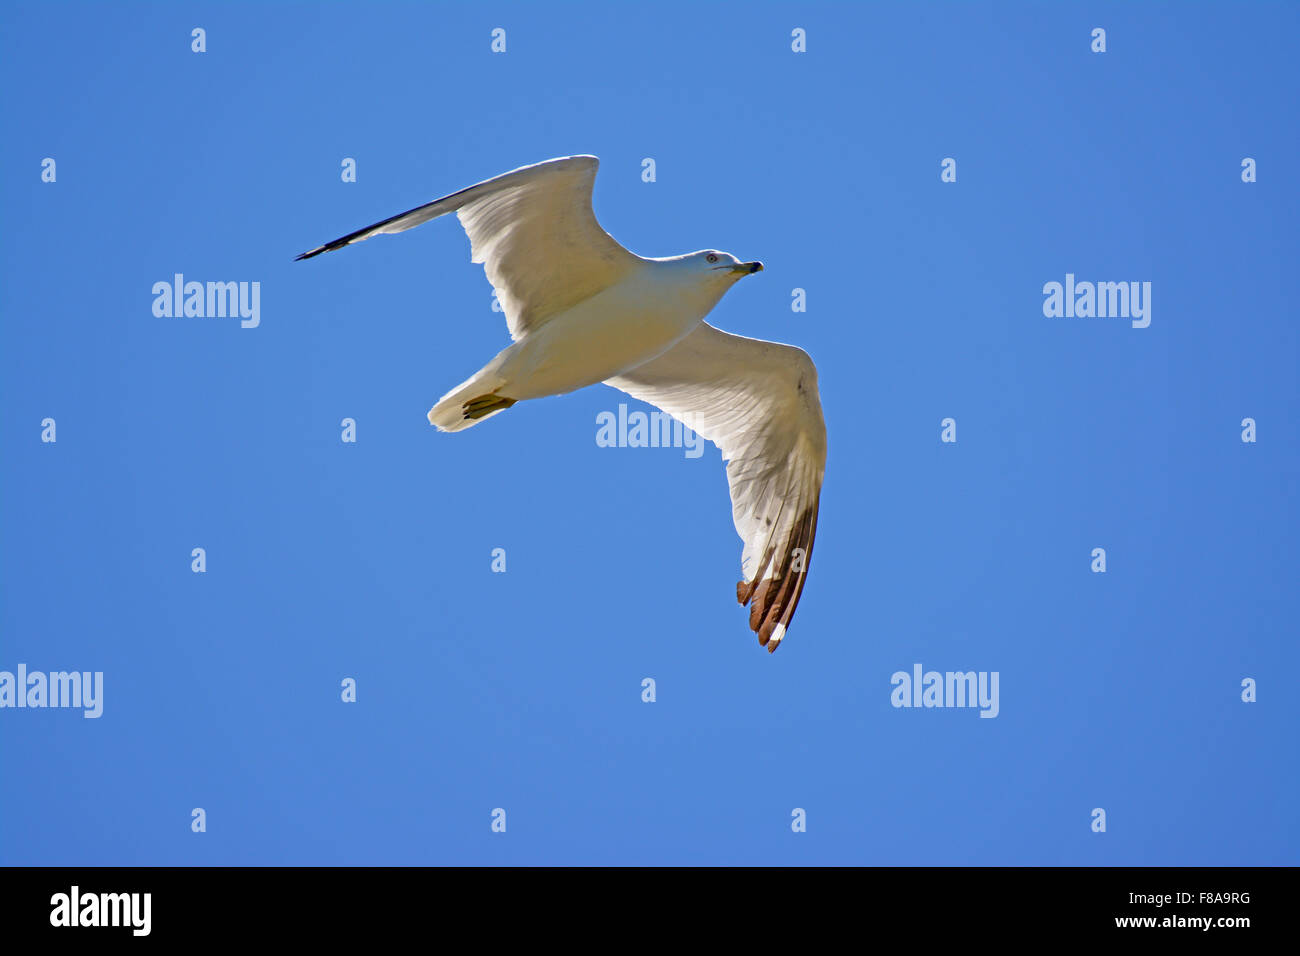 Ring-billed gull, Larus delawarensis - Stock Image